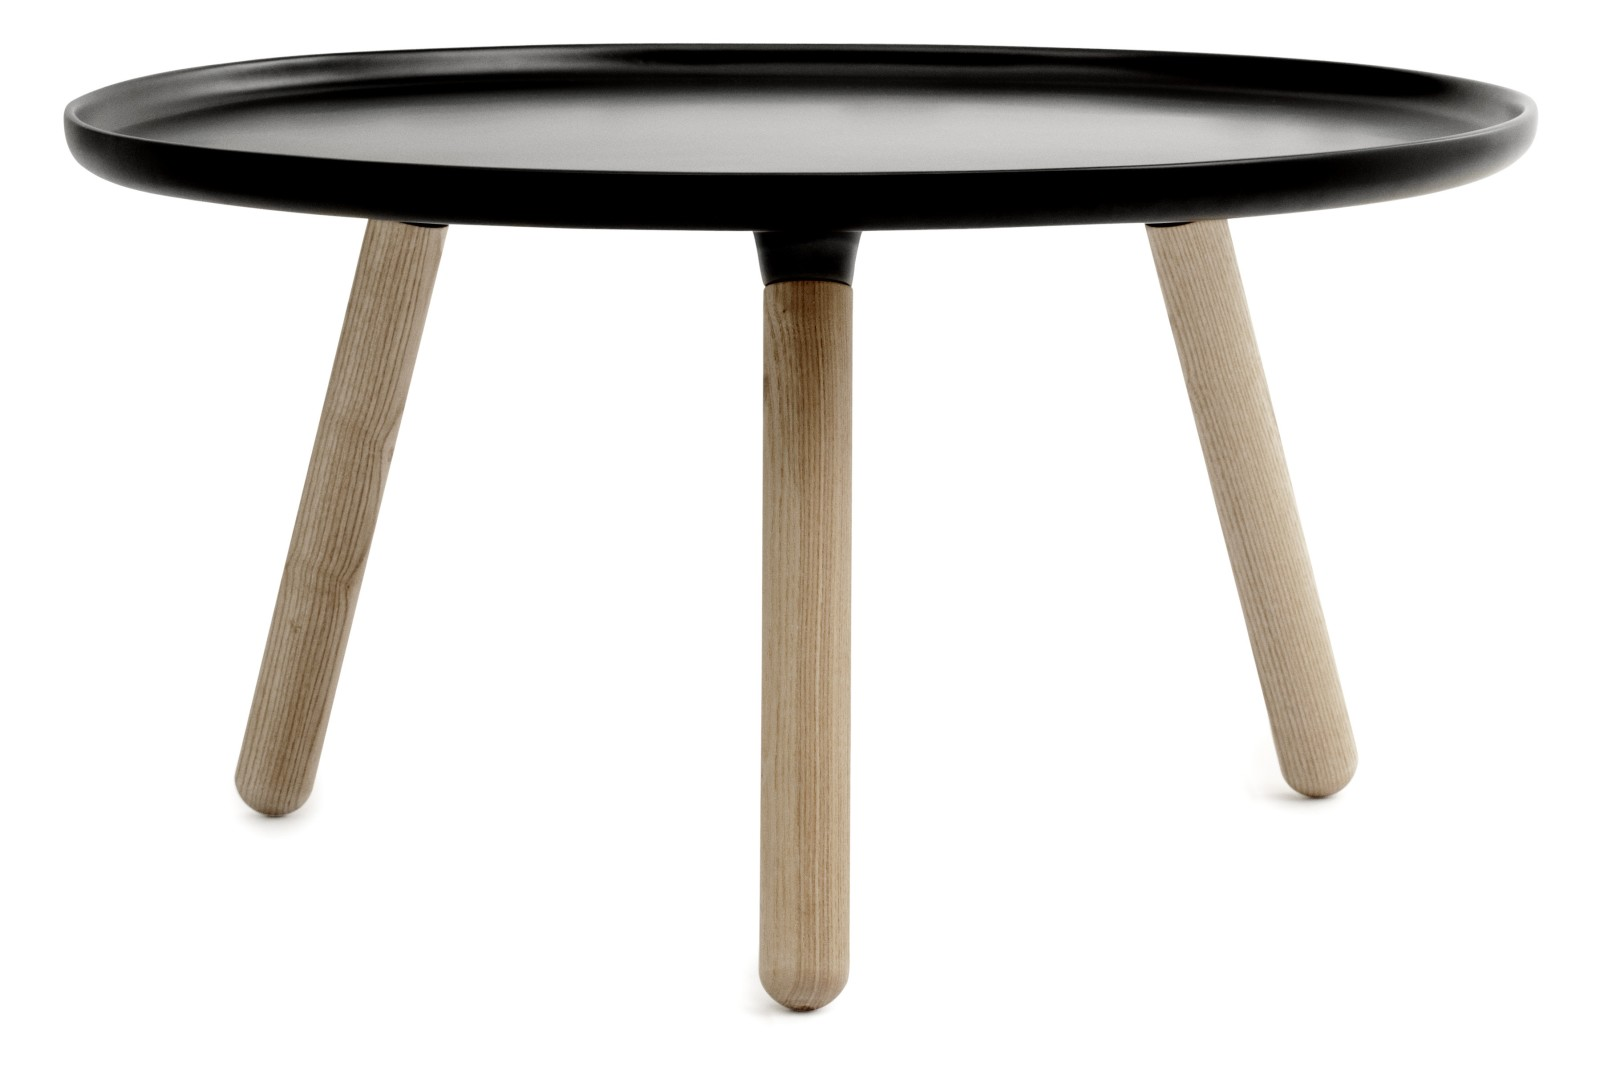 Tablo Round Coffee Table Black Top, Natural Ash Legs, Large